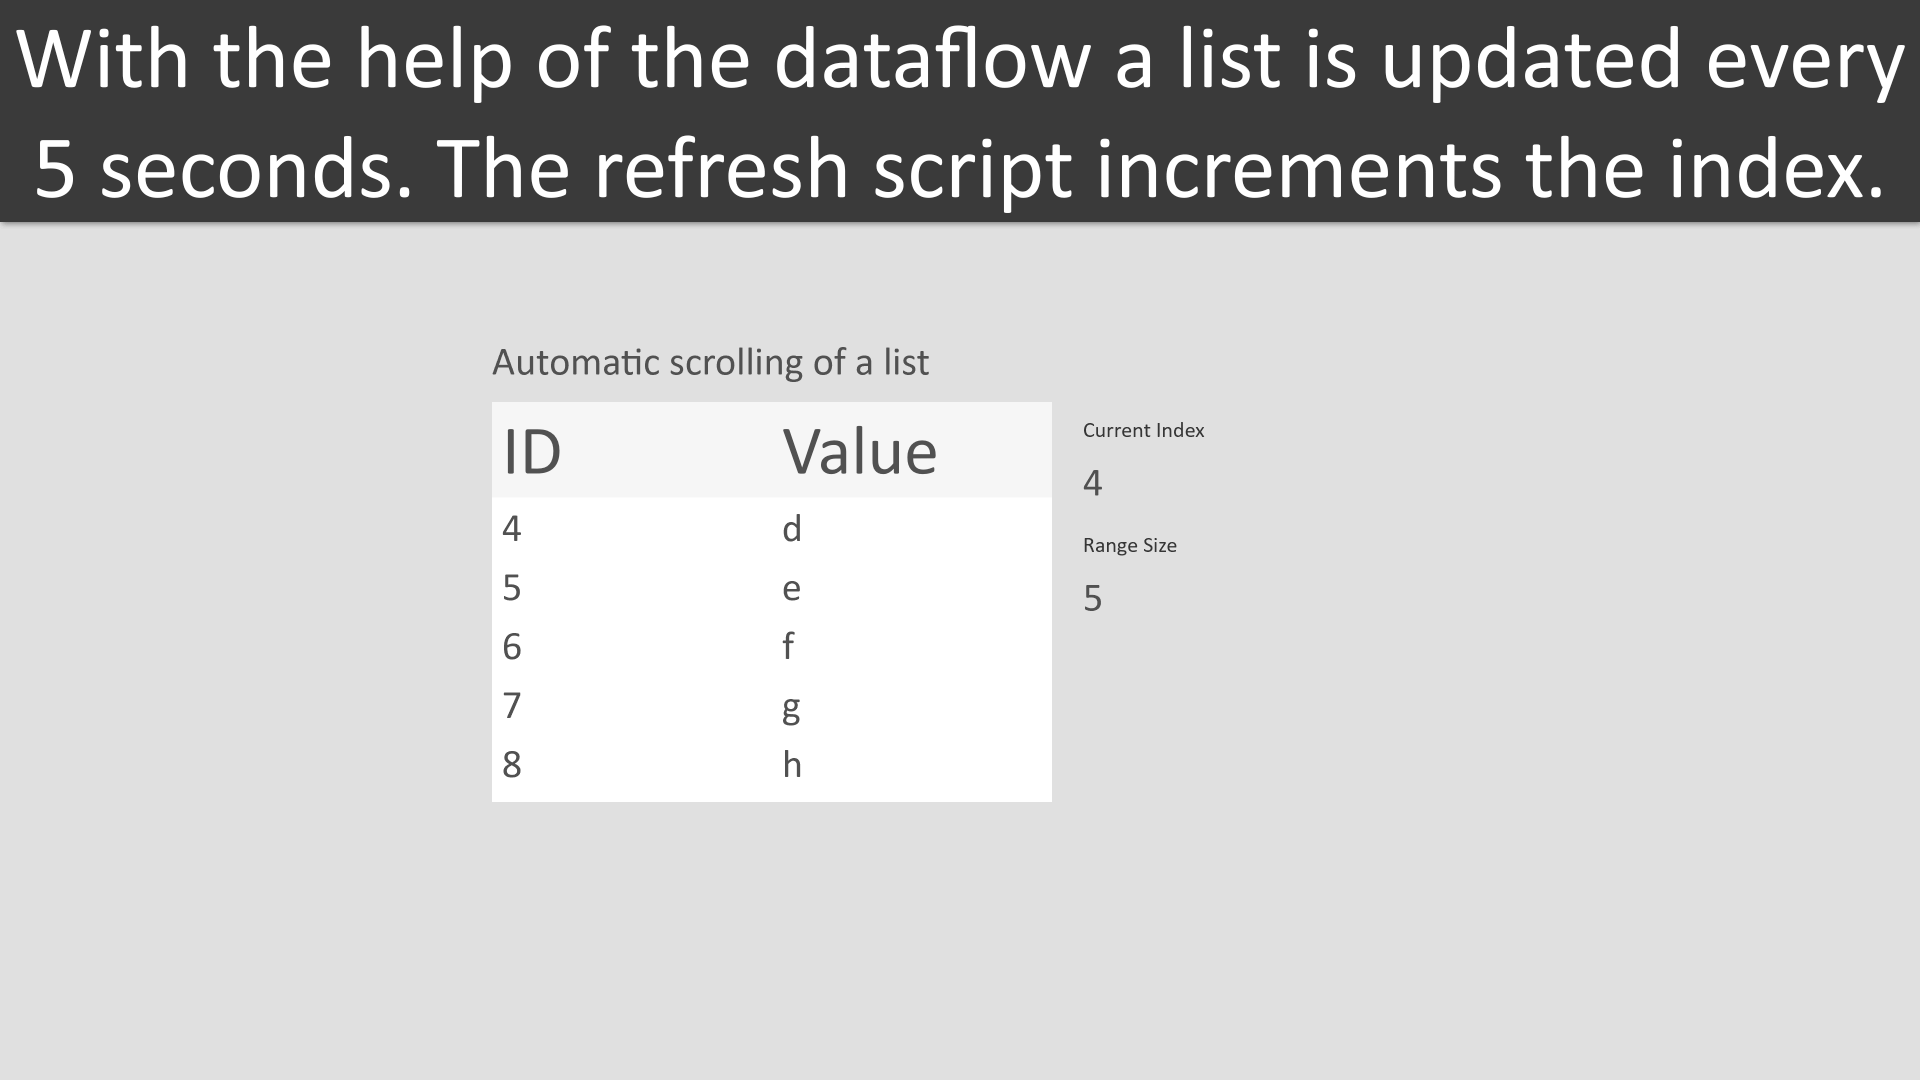 Script example for automatic scrolling of a list using a dataflow